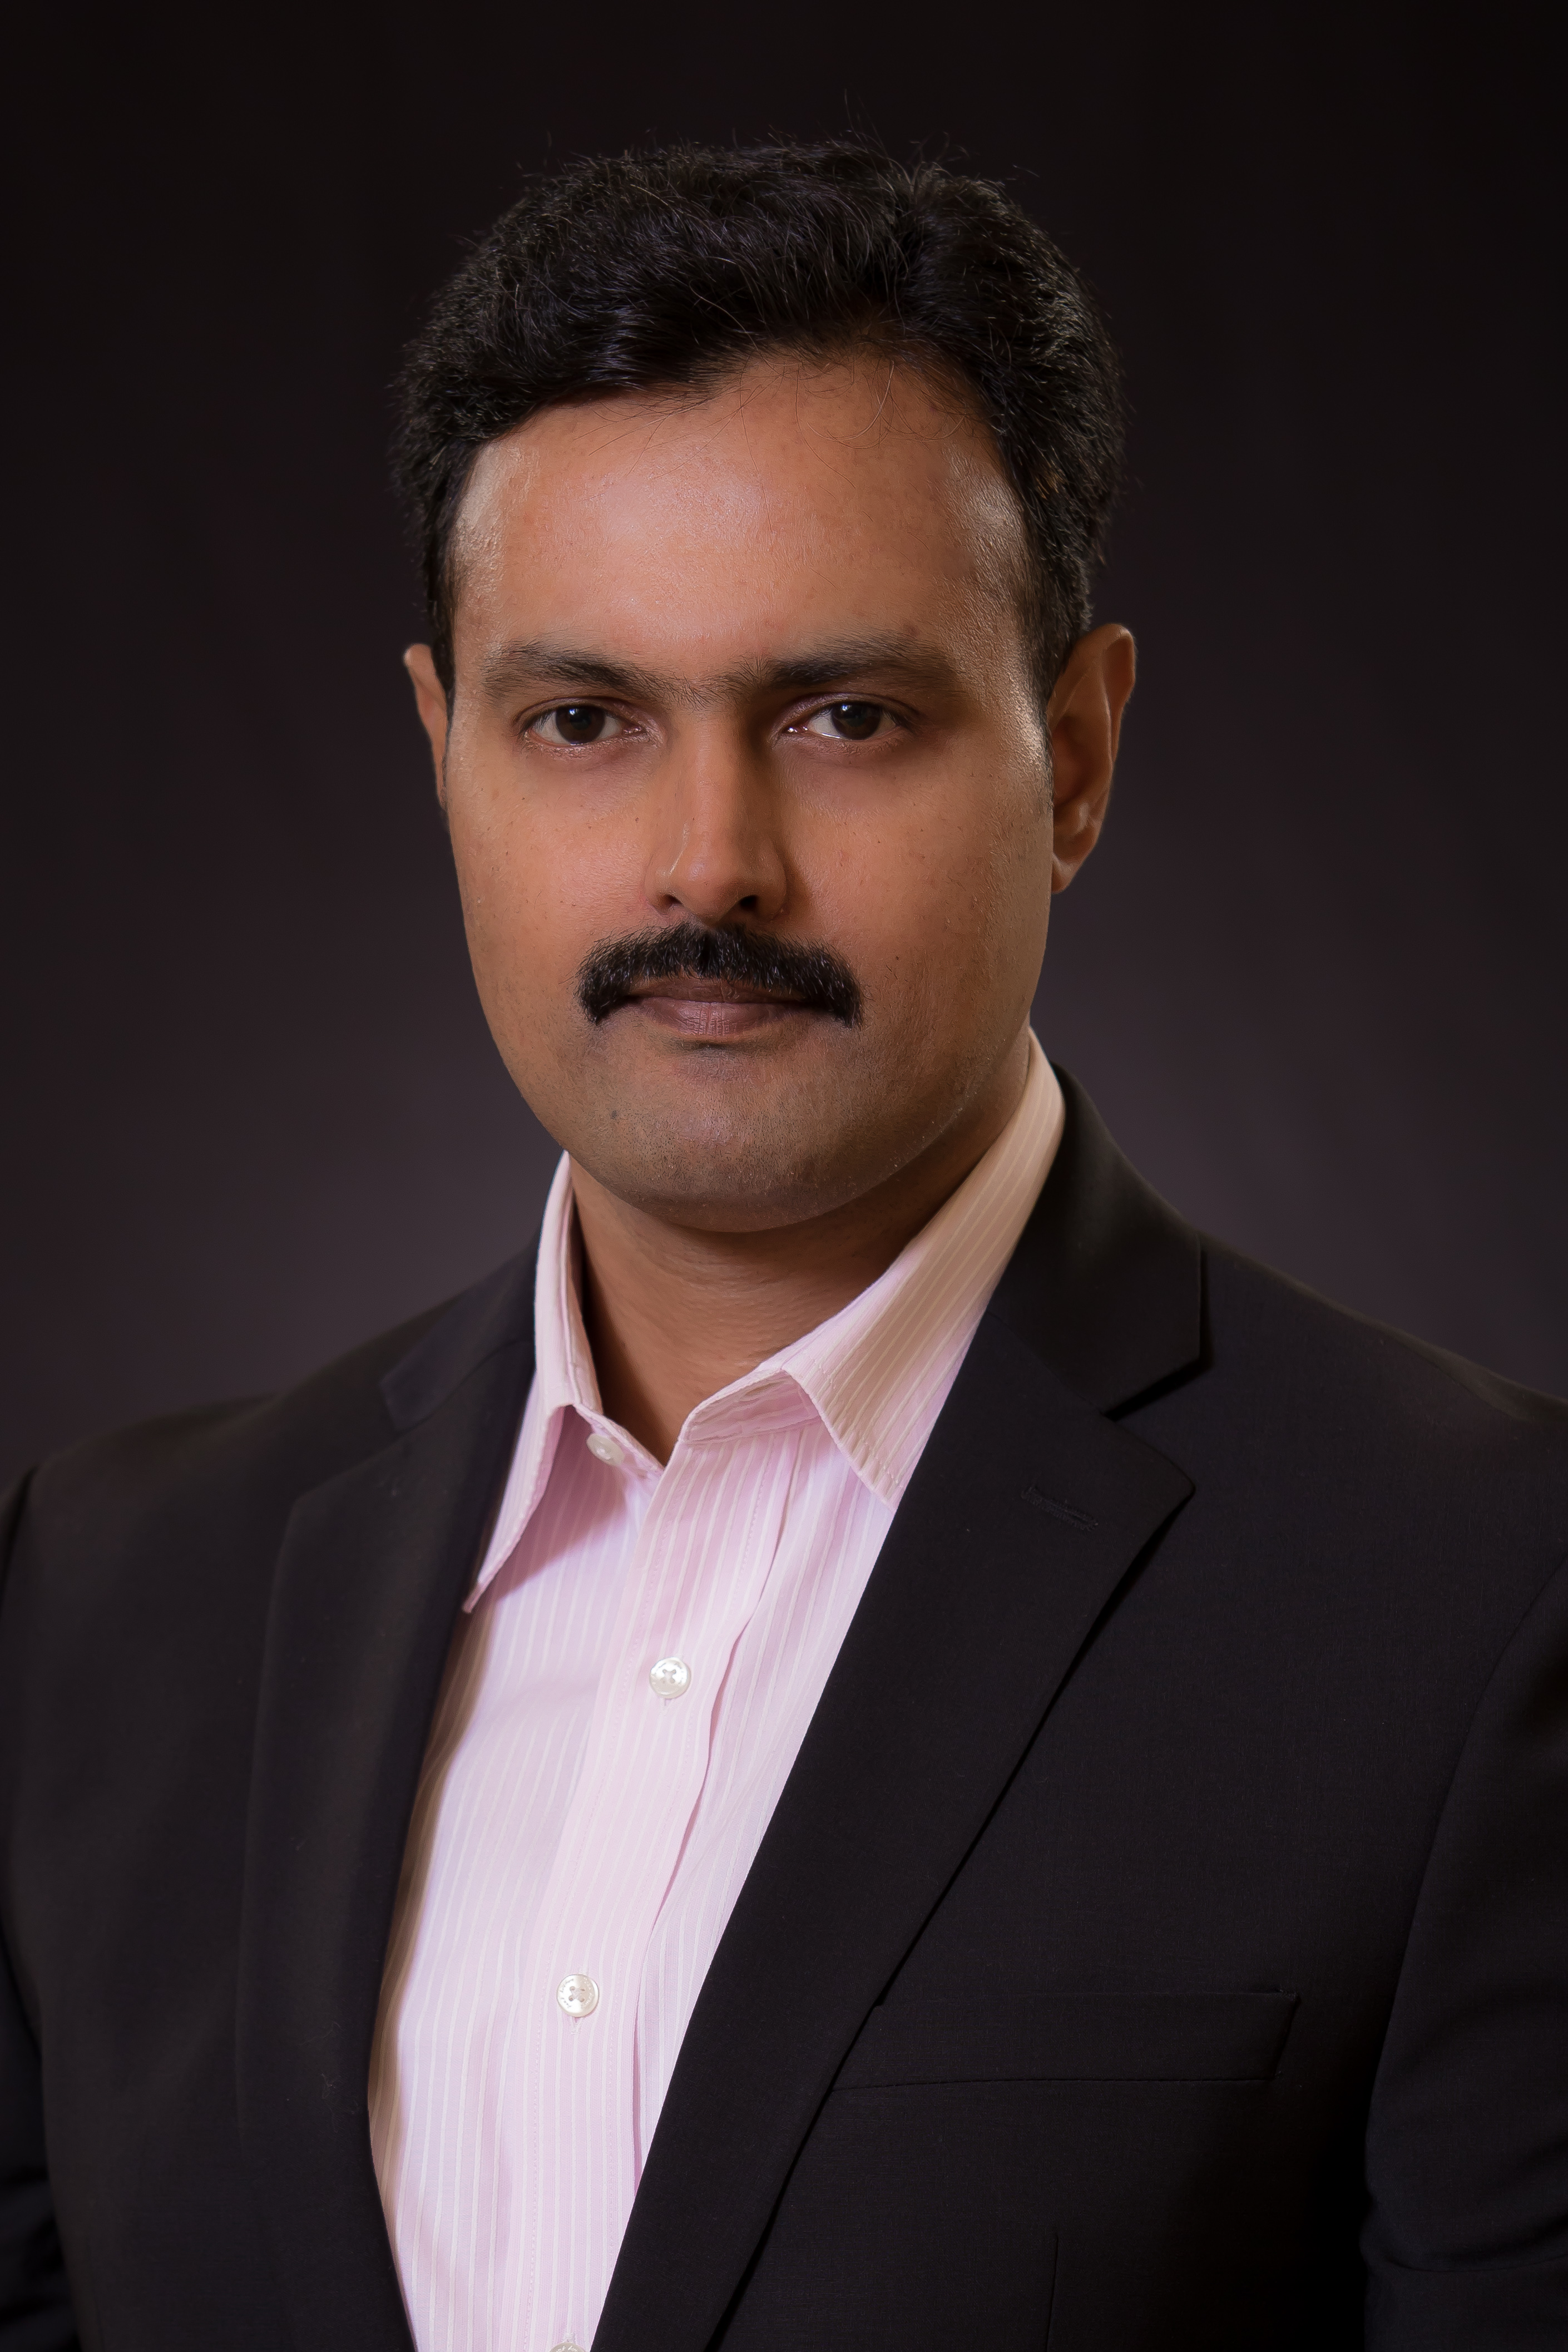 Saikrishna Baragur, VP, General Manager Streamline Healthcare Solutions